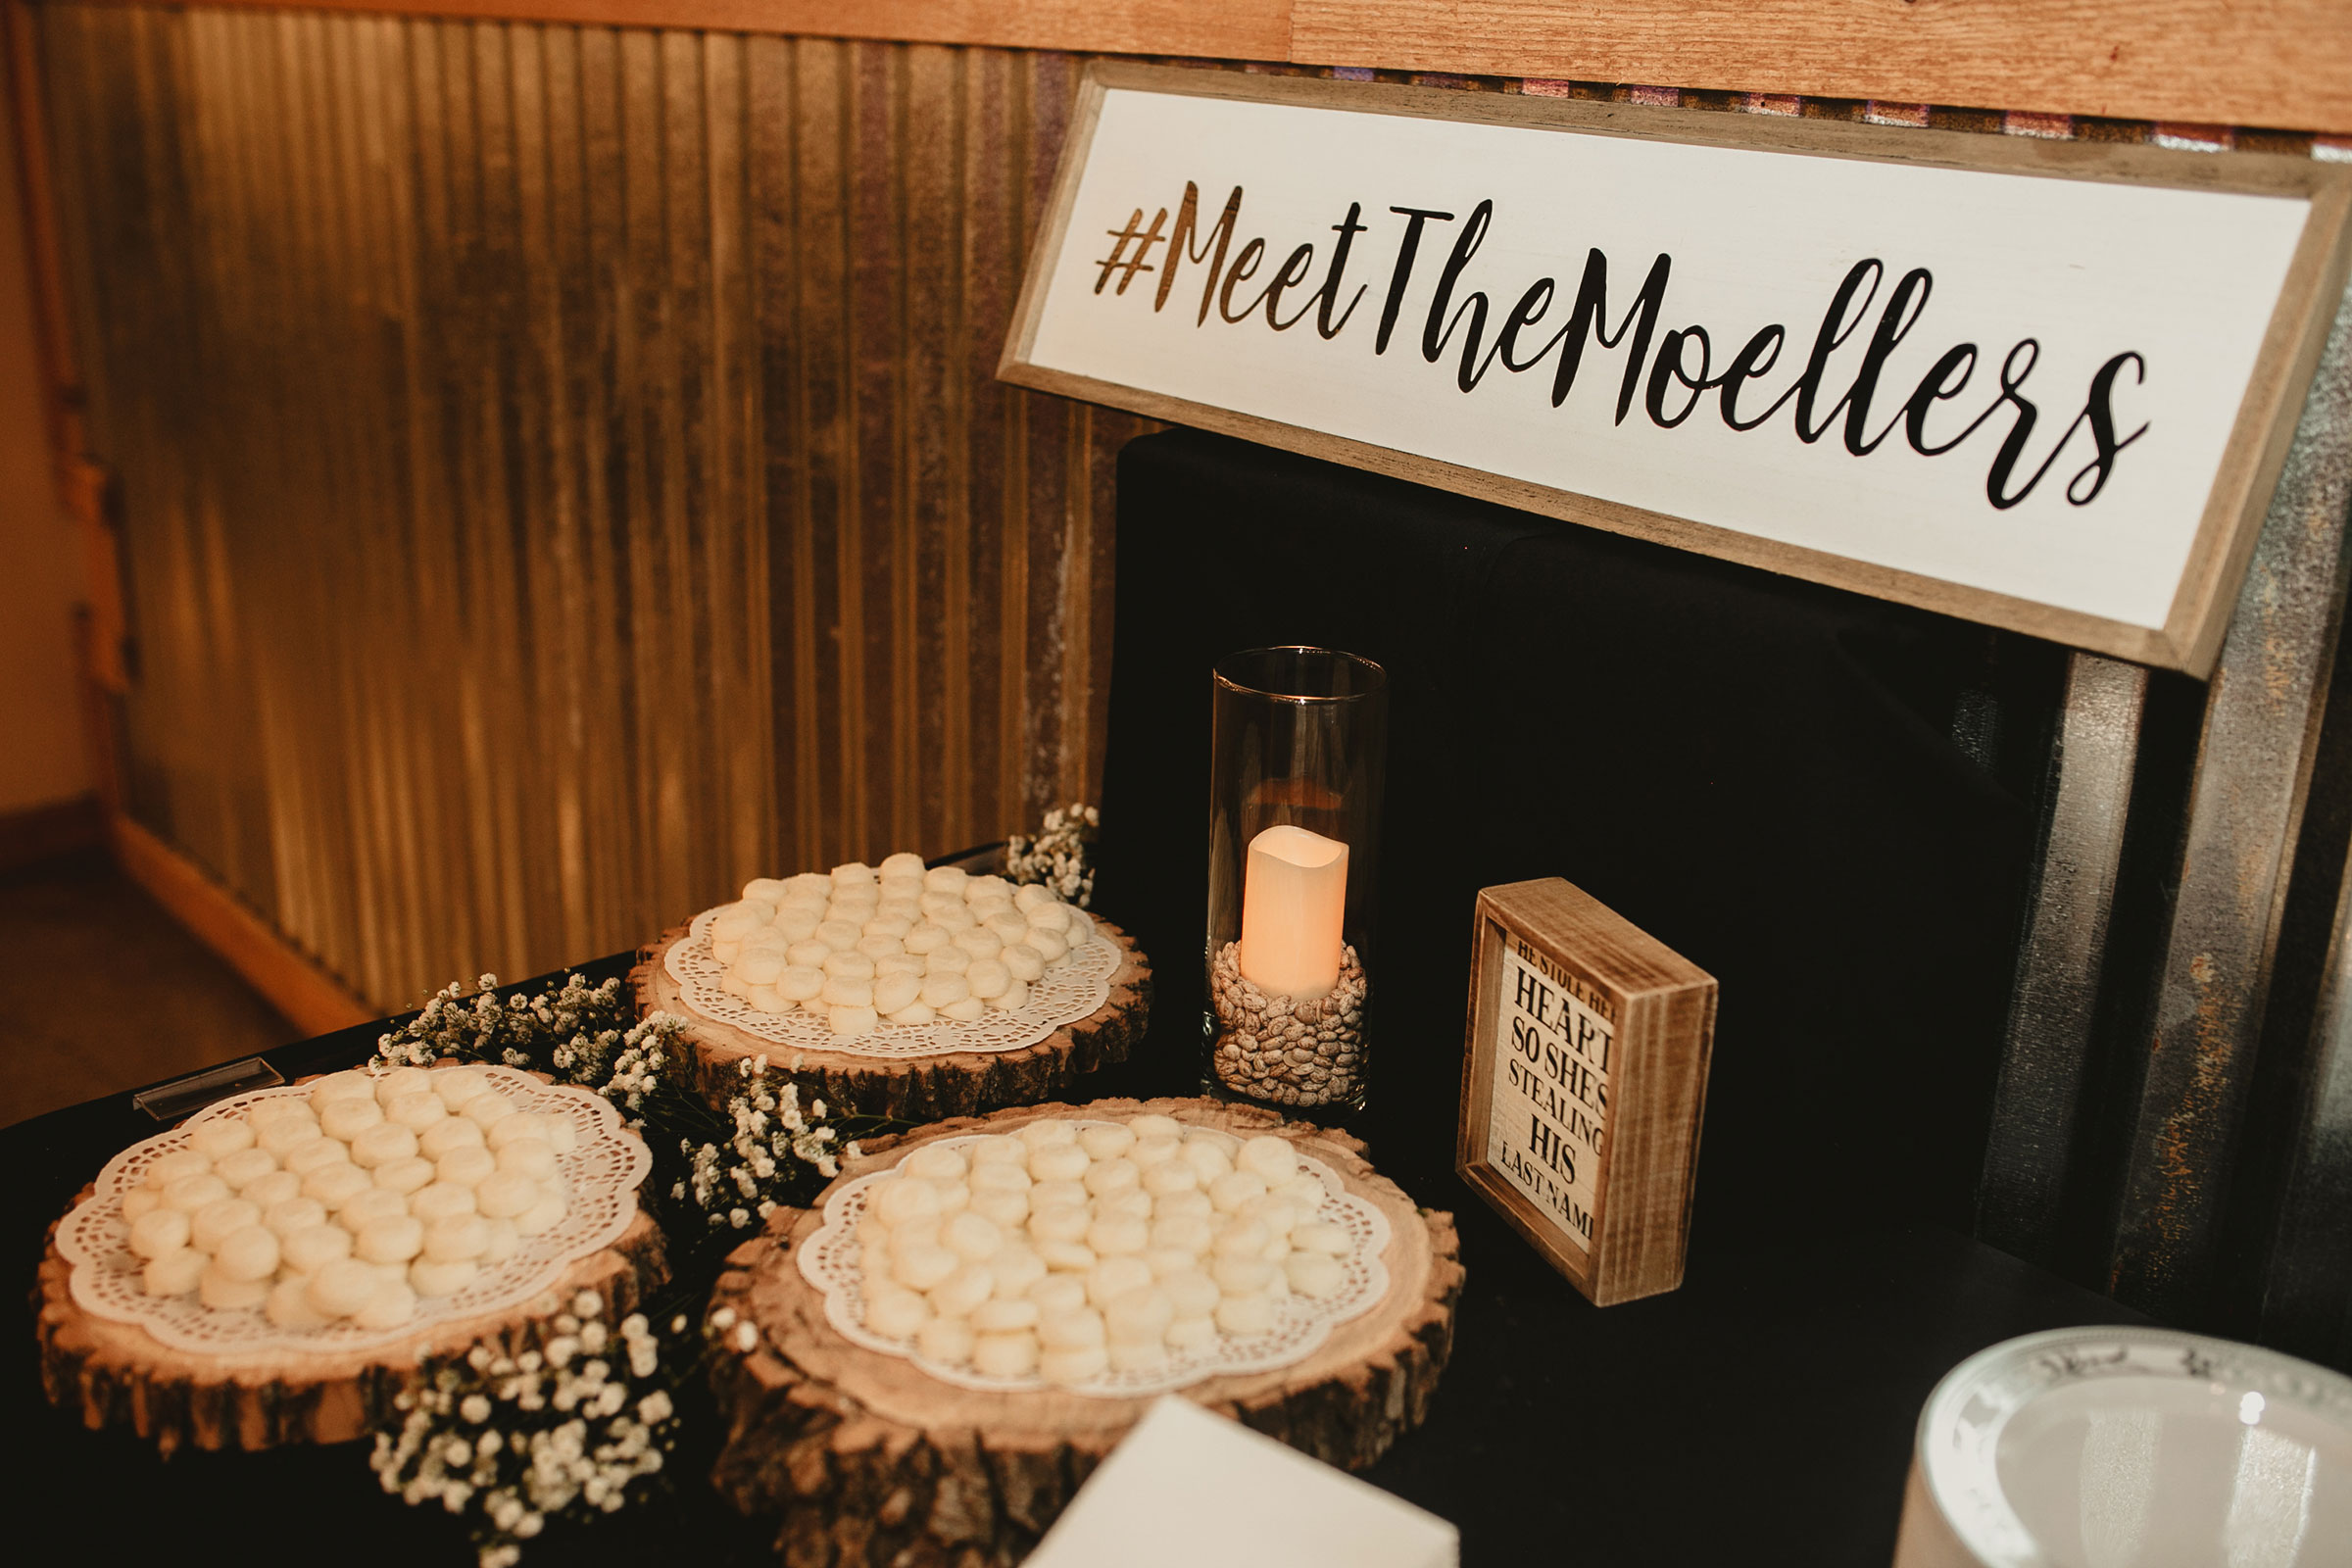 hashtag-sign-dessert-table-decades-event-center-building-desmoines-iowa-raelyn-ramey-photography..jpg